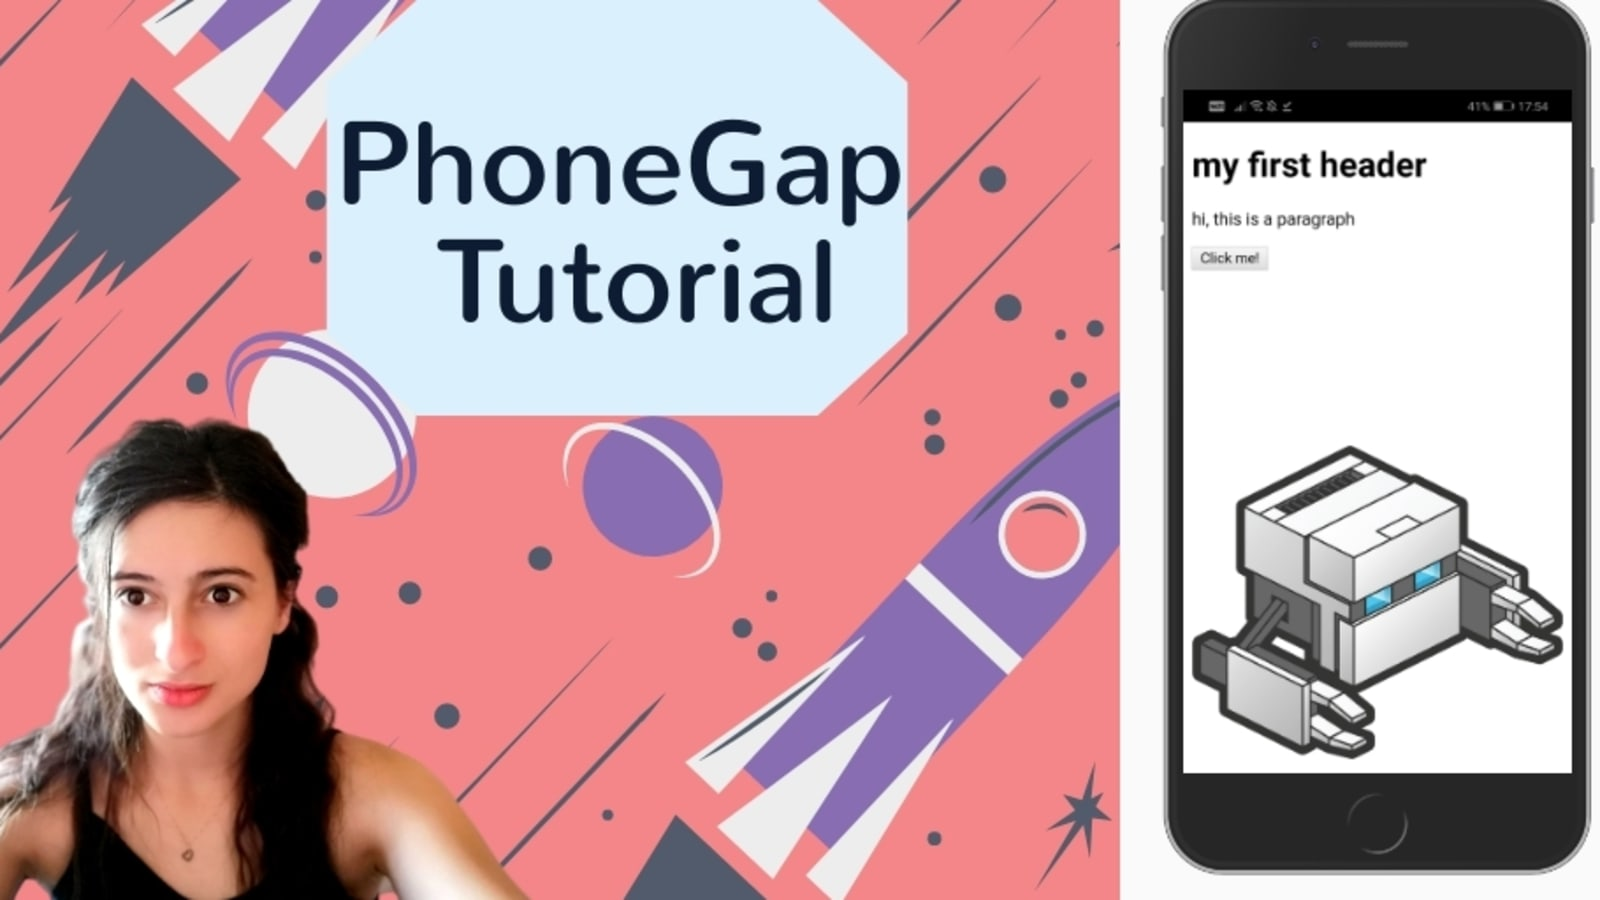 How to Build an App With PhoneGap